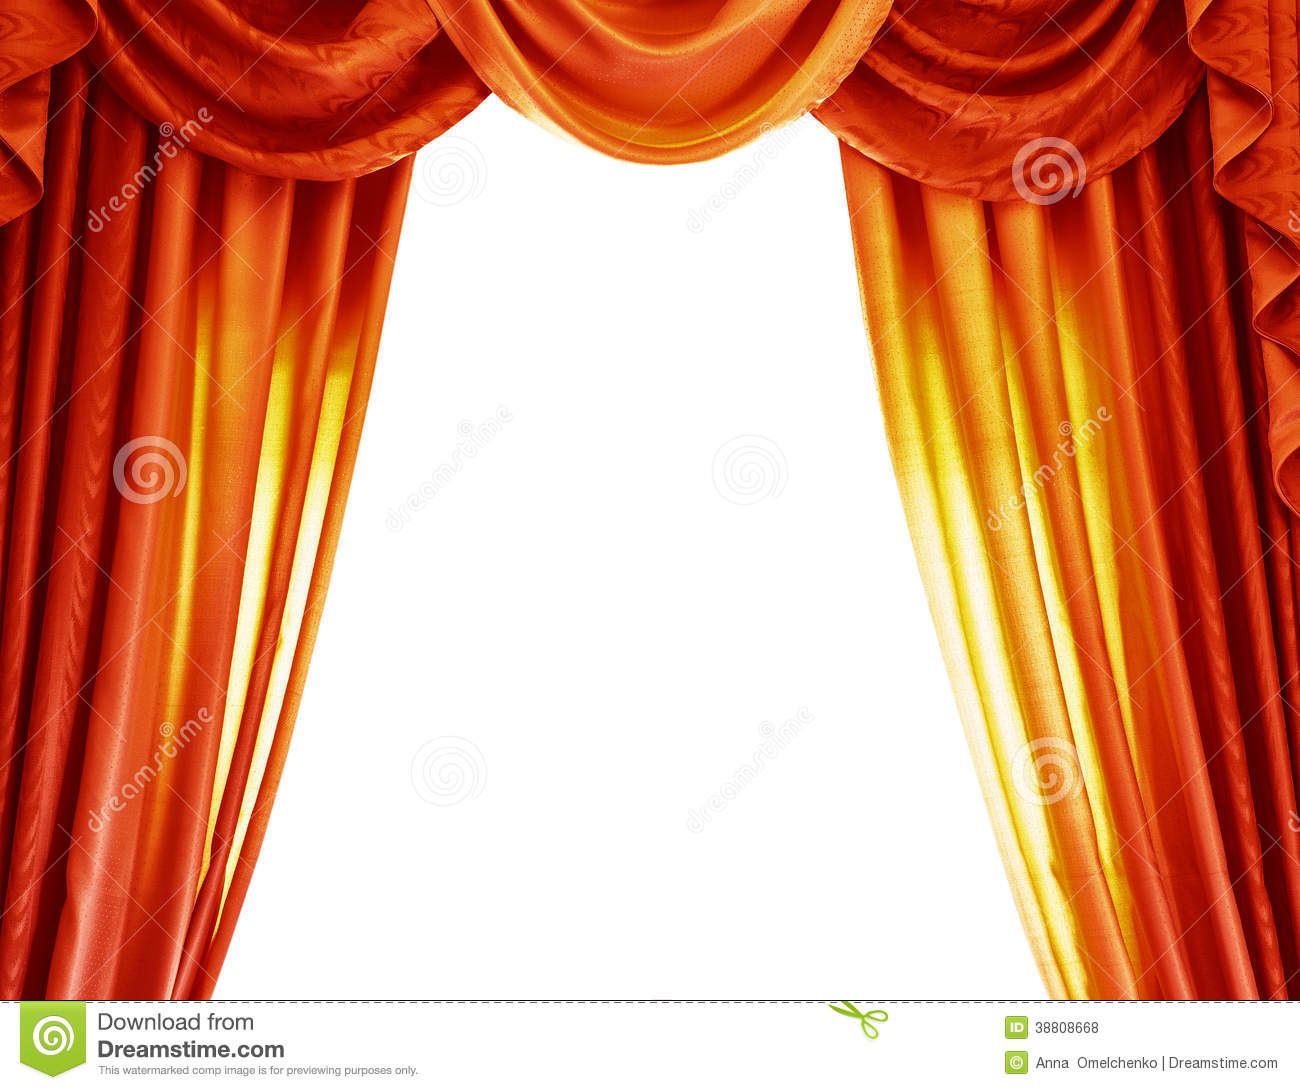 White background abstract border open curtain theatre theatrical